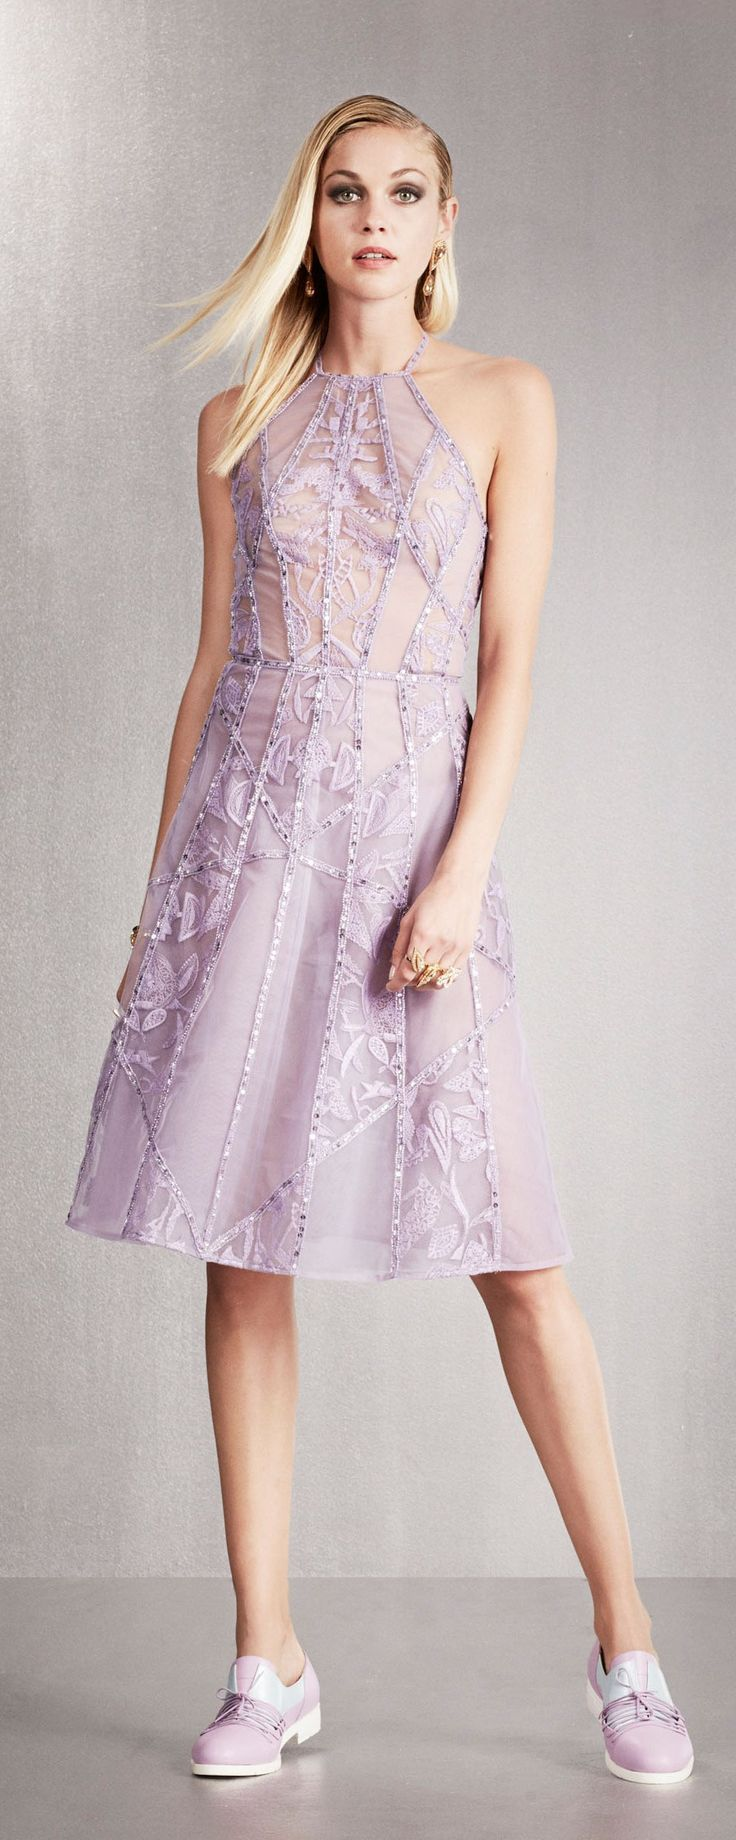 best simple short gown references images on pinterest cute